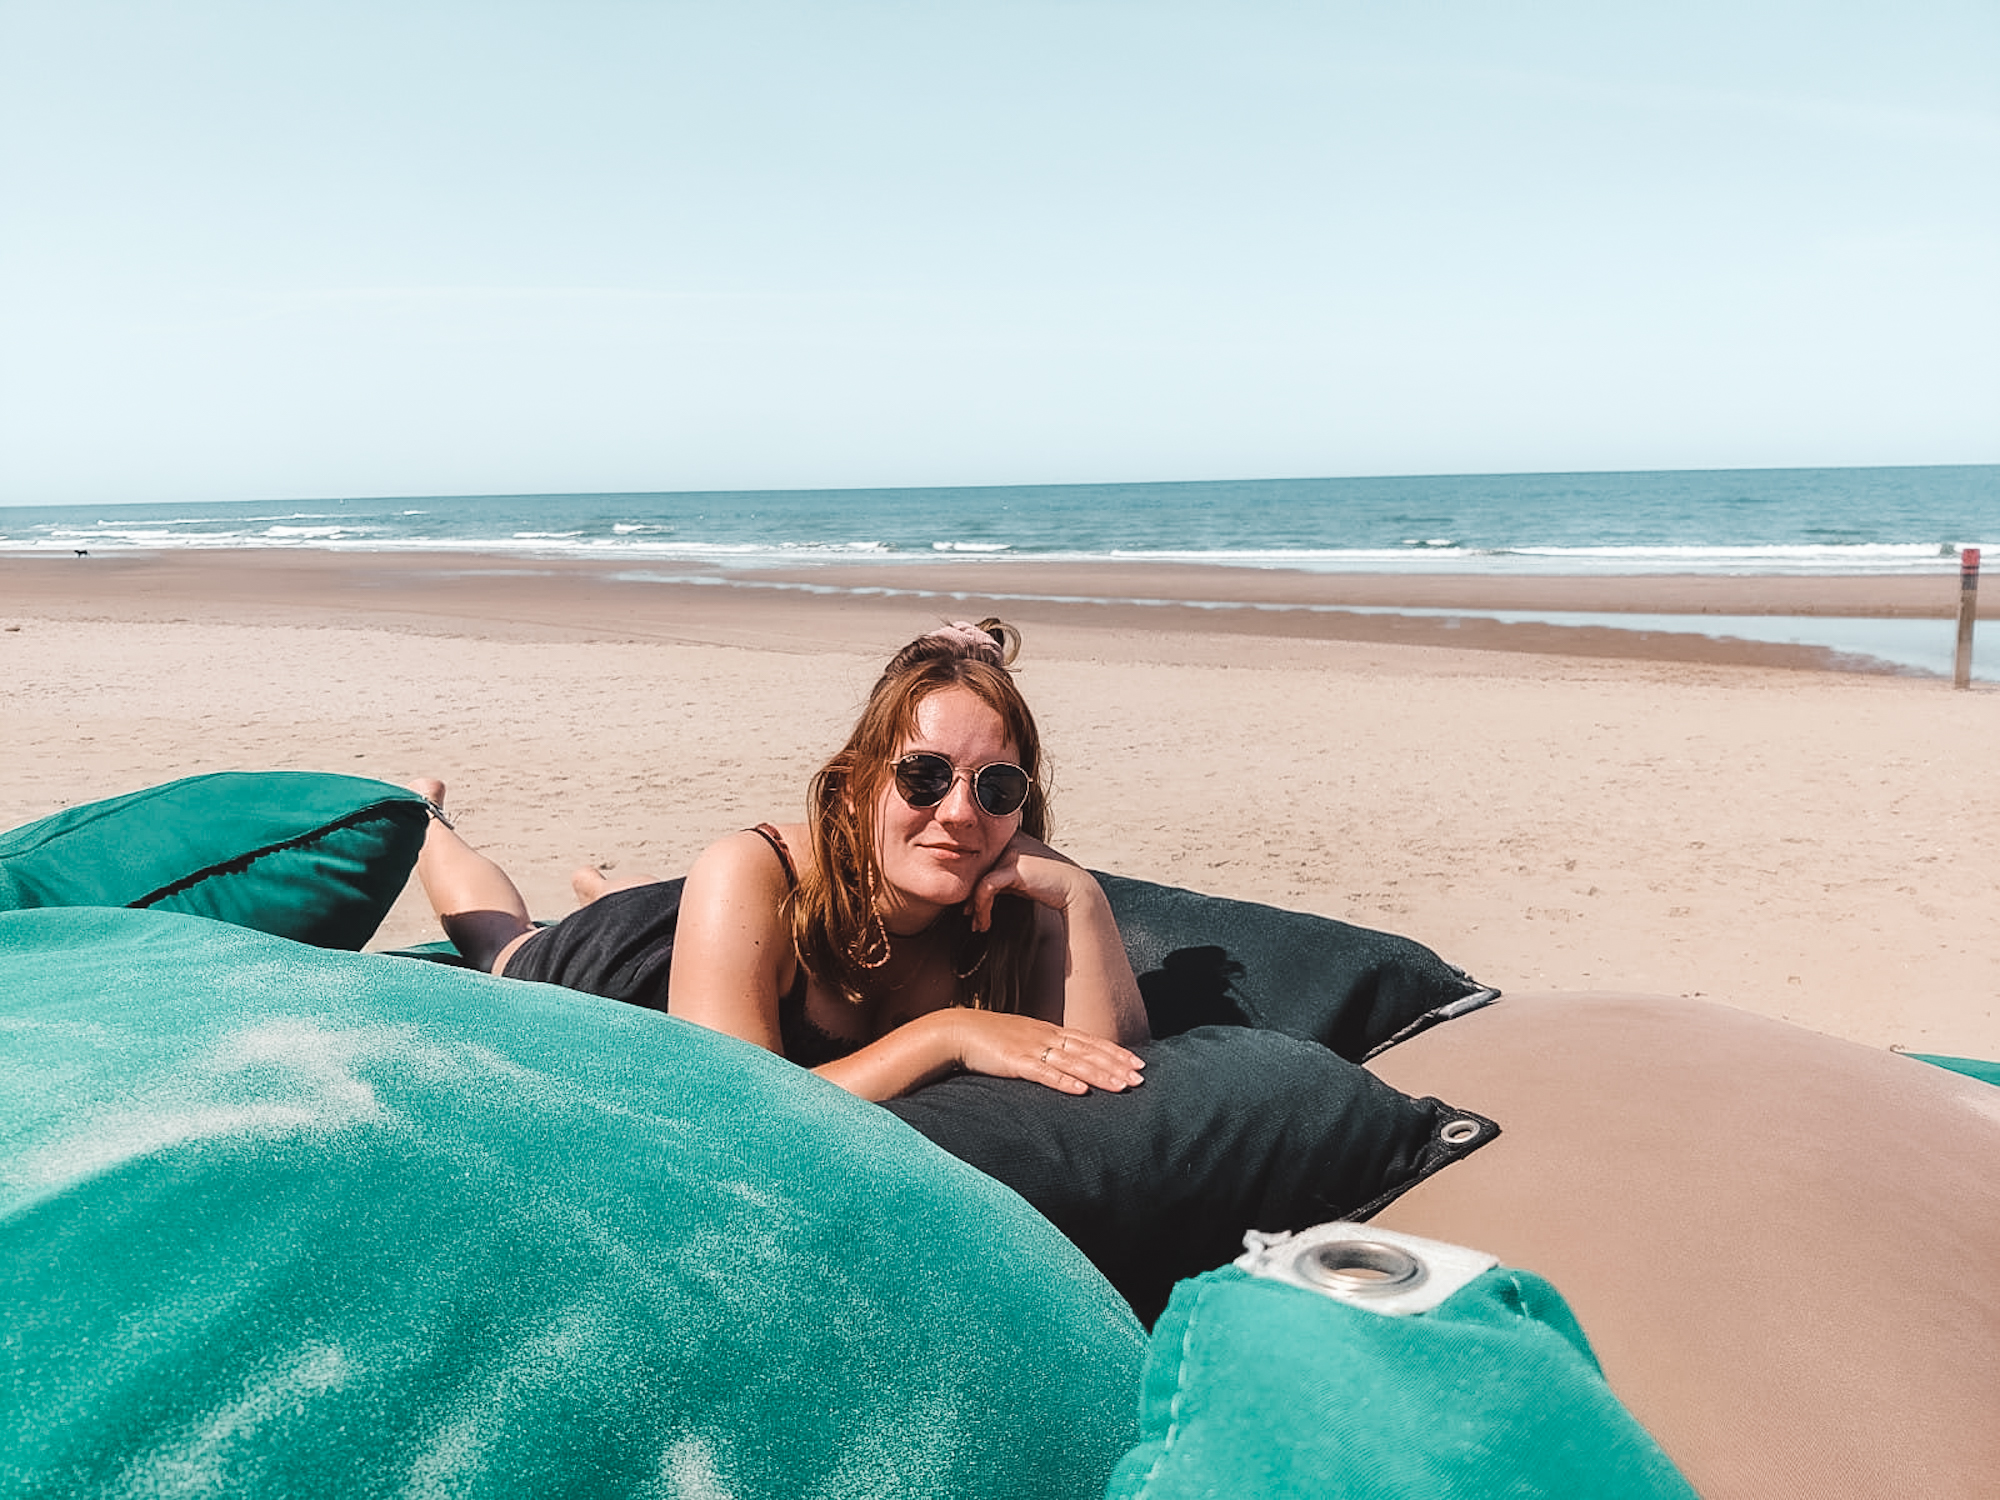 Relaxen op strand Texel Paal 12